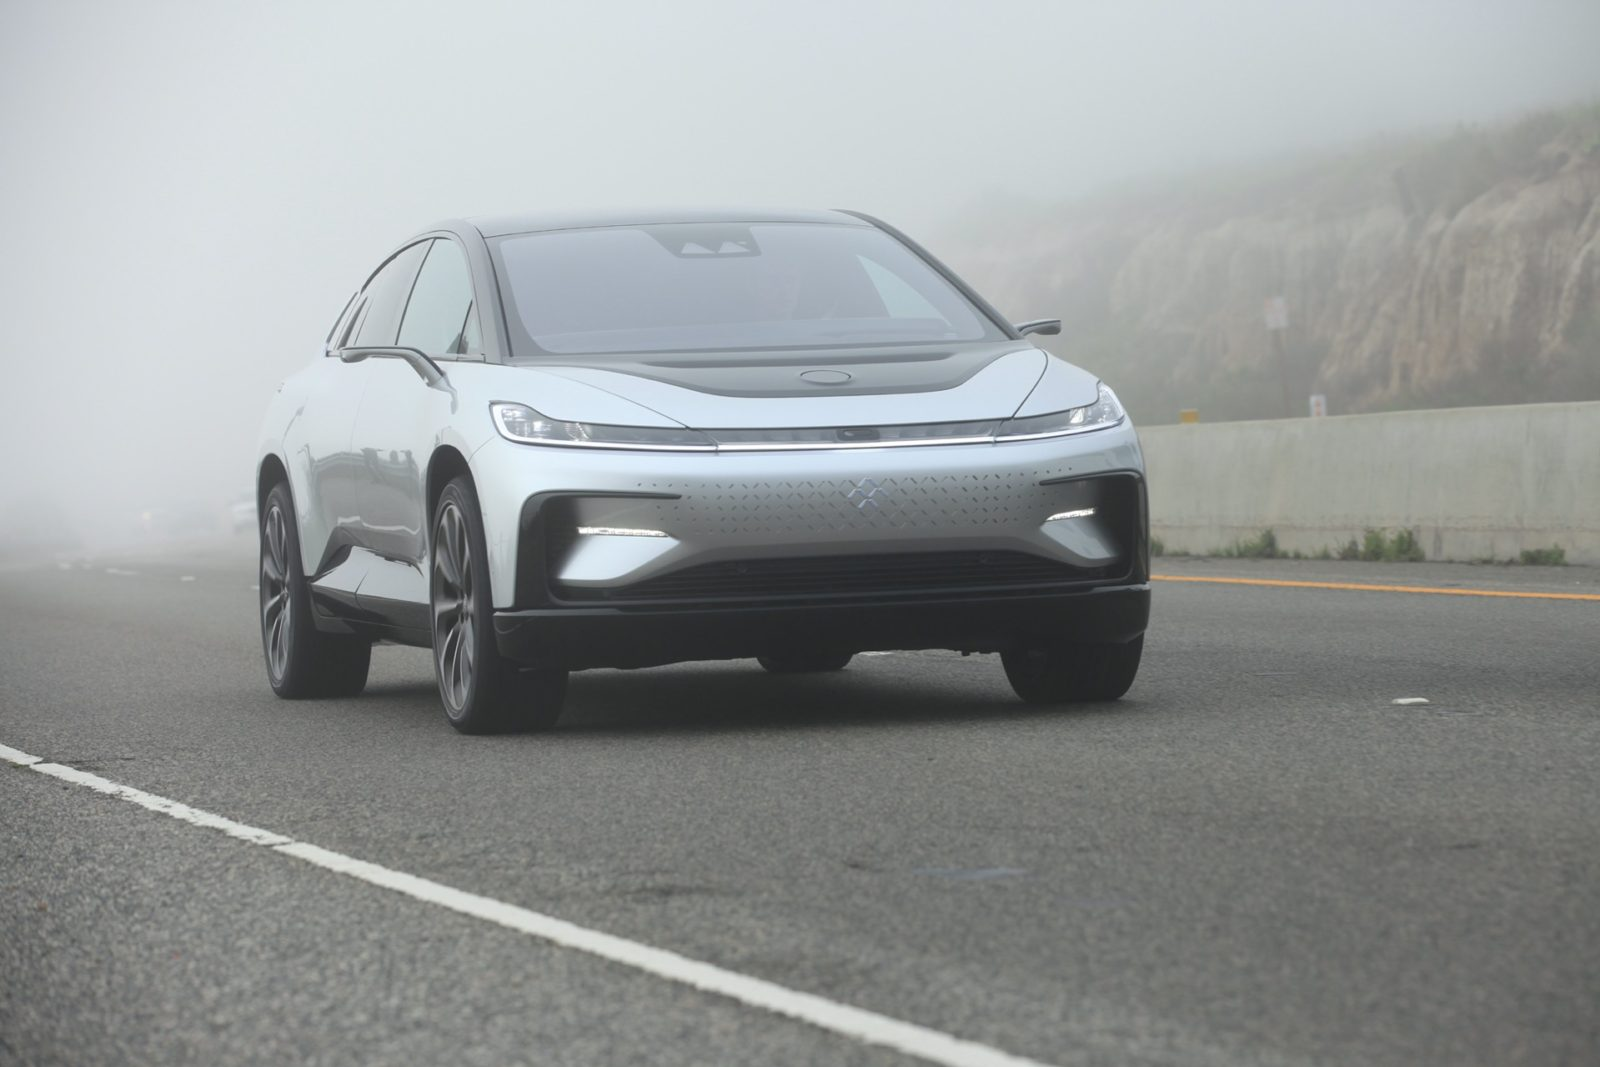 geely-invests-in-faraday-future,-may-build-cars-for-ev-startup